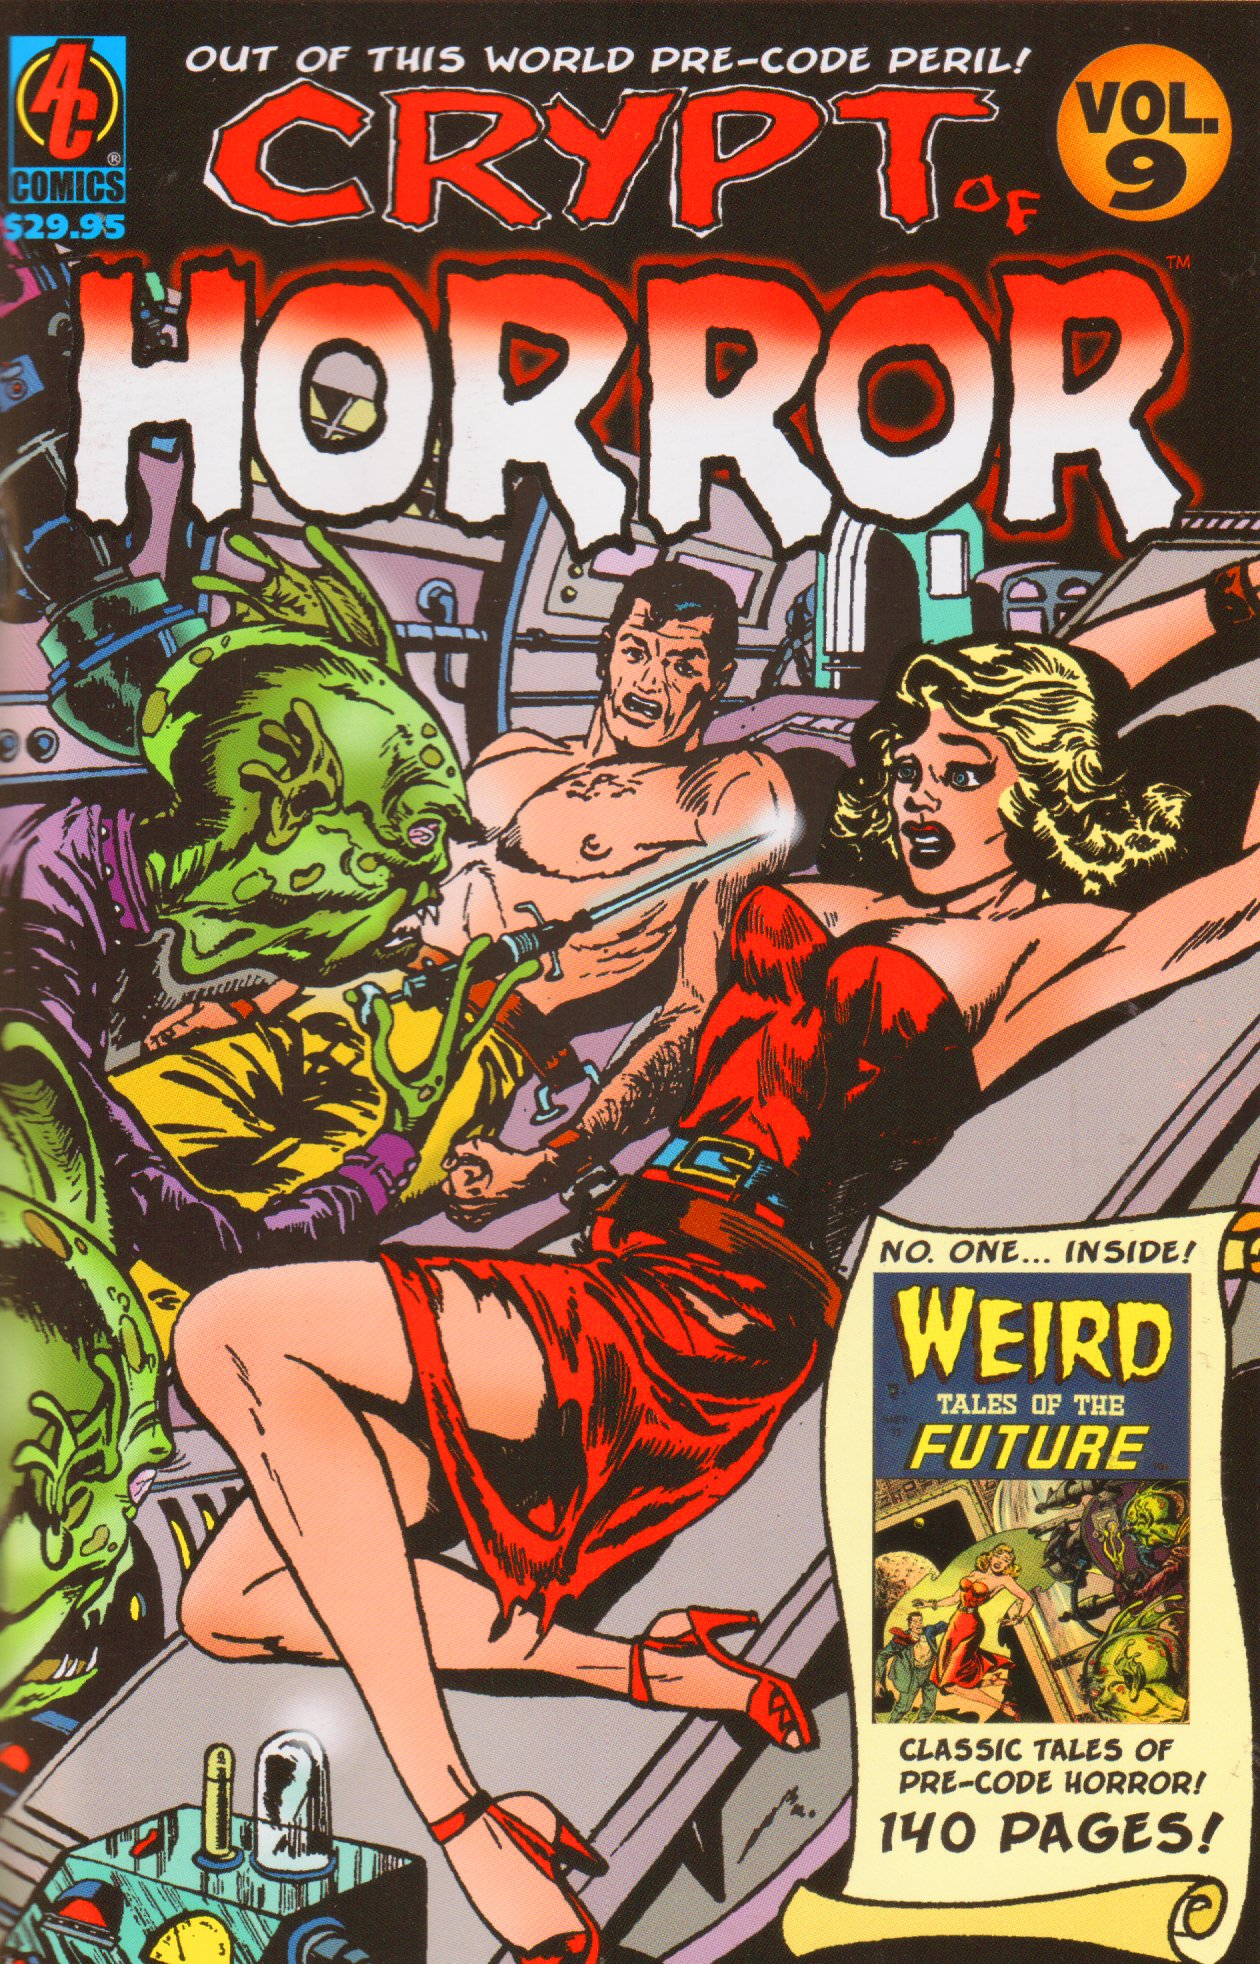 Download CRYPT OF HORROR Vol 9 Weird Tales Of The Future! Pre-code Horror Comics (Volume 9) pdf